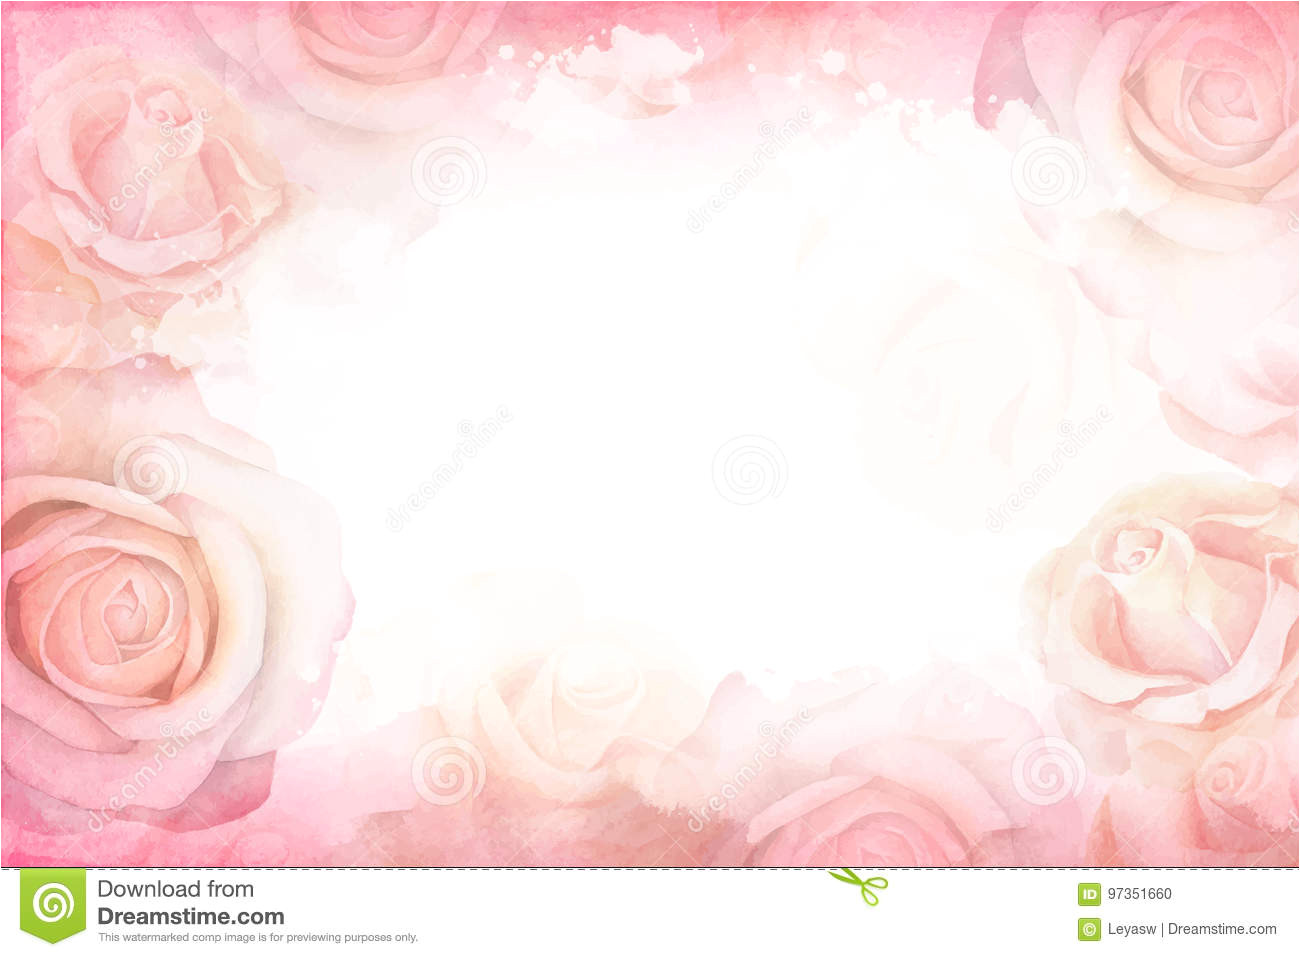 abstract romantic rose horizontal background delicate design template greeting cards invitations 97351660 jpg